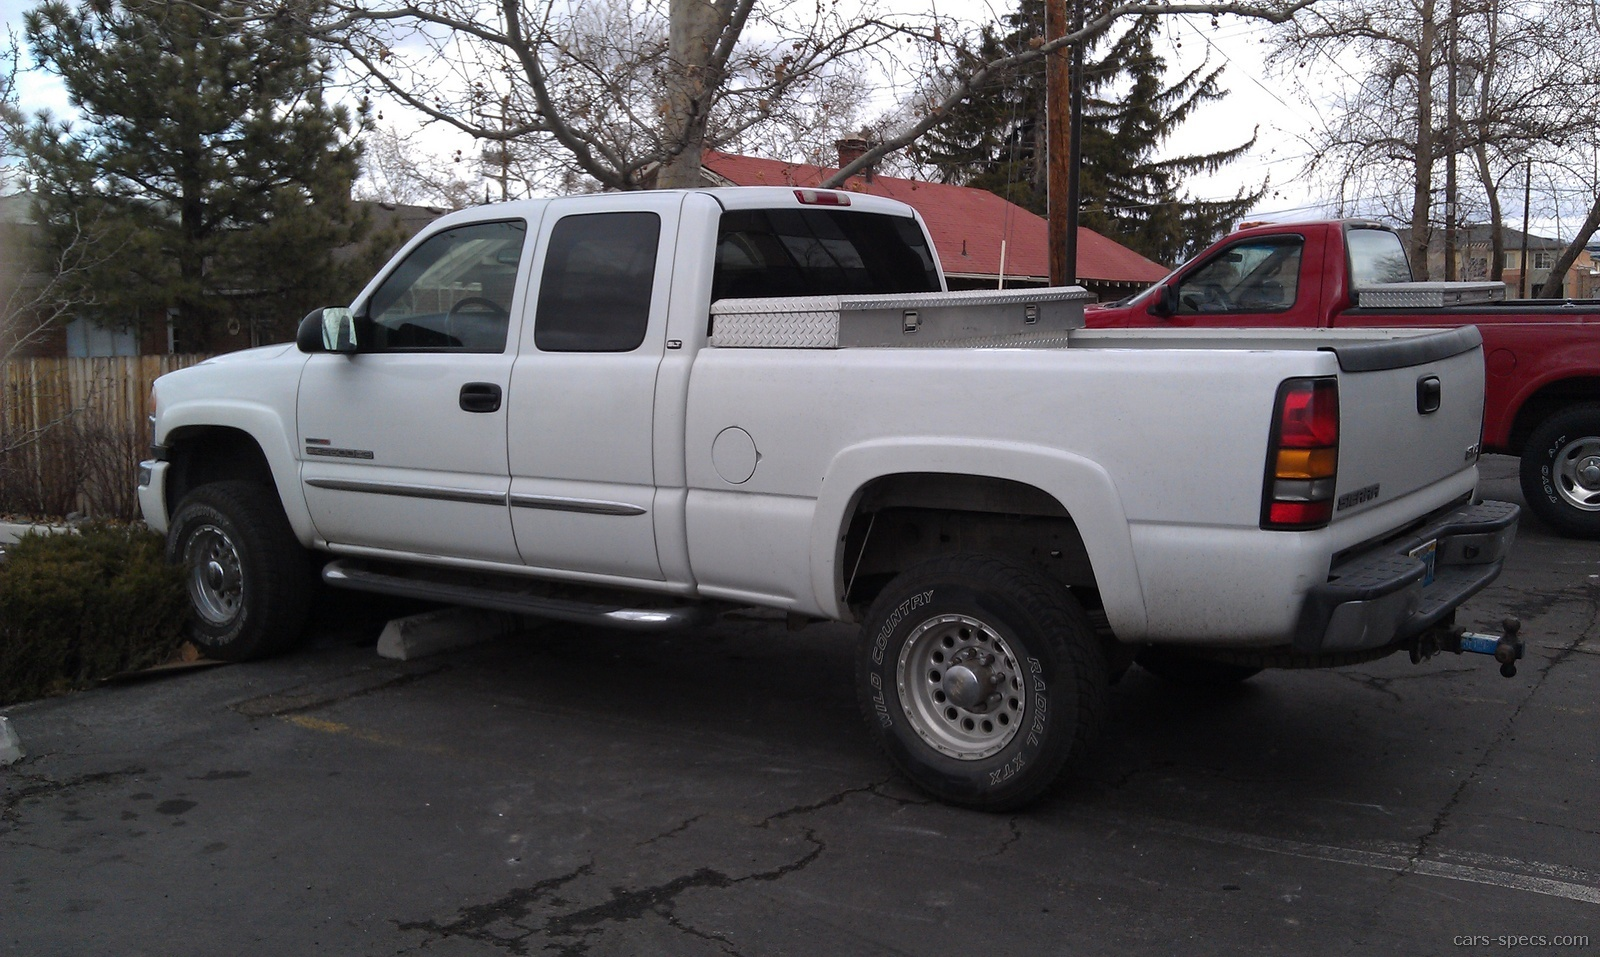 2002 gmc sierra 2500 base extended cab pickup 6 0l v8 4 4 4 speed automatic 6 6 ft bed